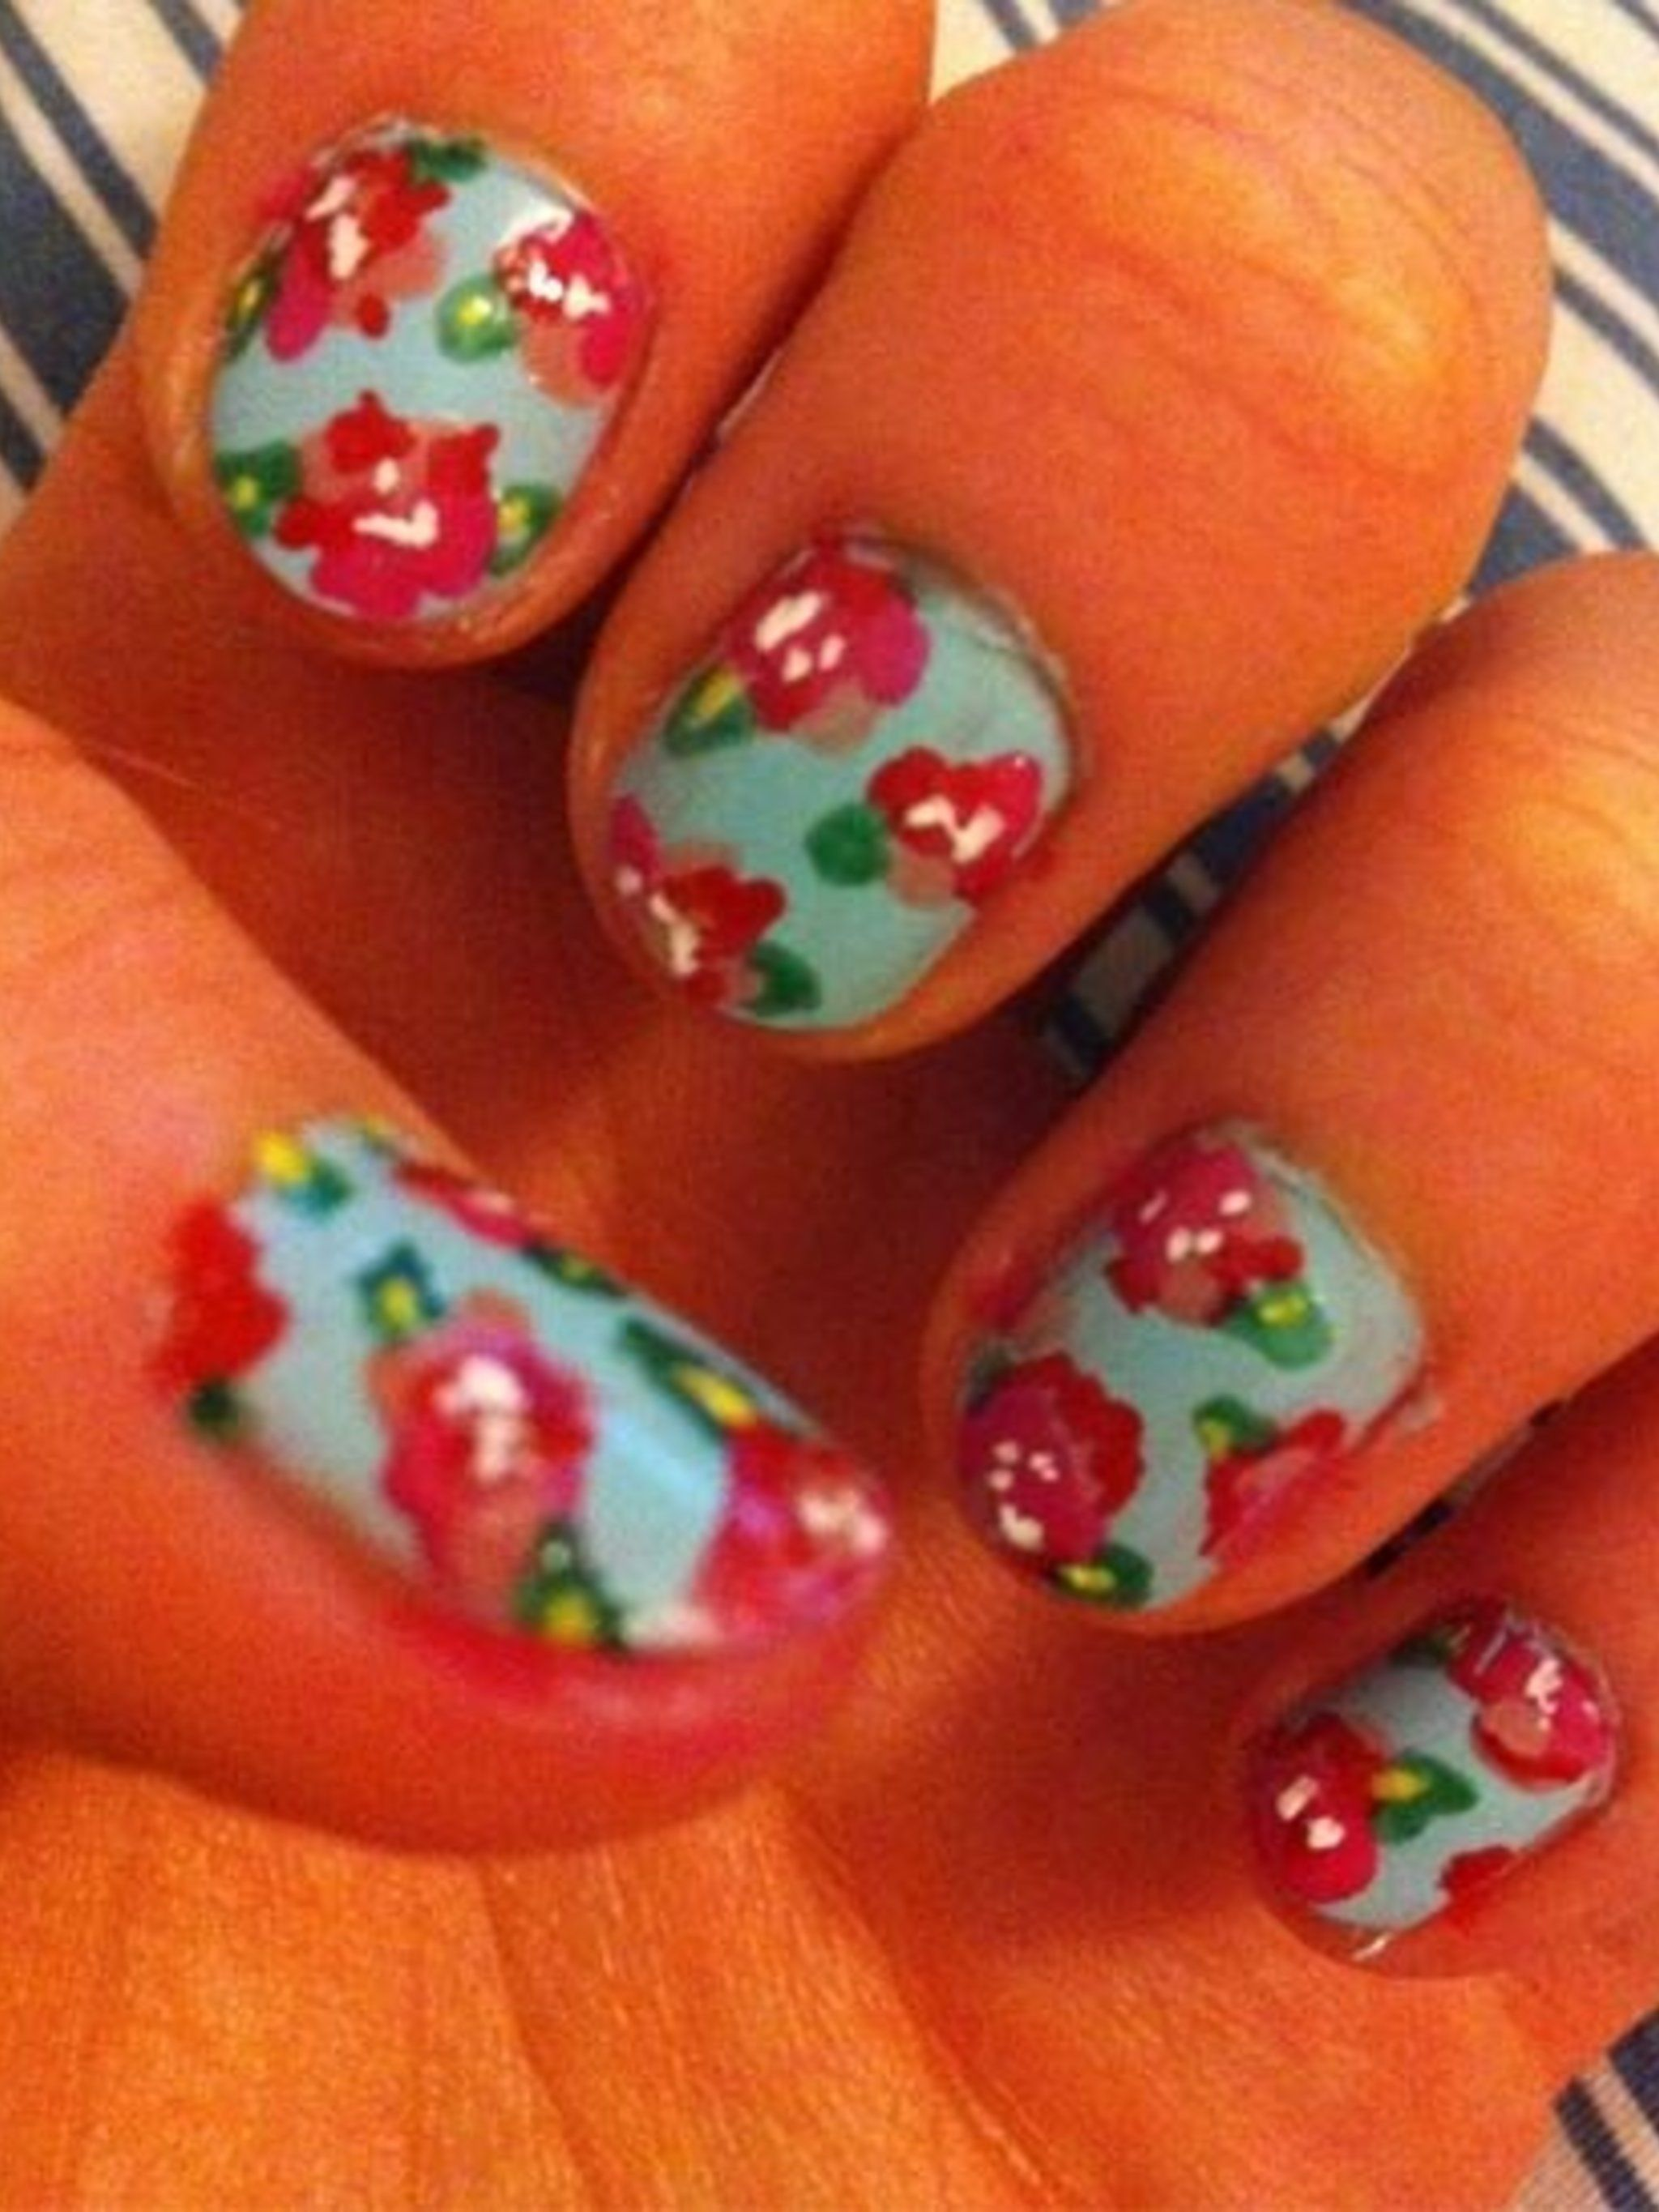 <p>For this Cath Kidston inspired design start off by painting your nails in a pale blue.</p><p>You need three shades of pink varnish for the petals. Place a blob of the darkest shade onto the nail and then apply the two lighter shades with cocktail stick